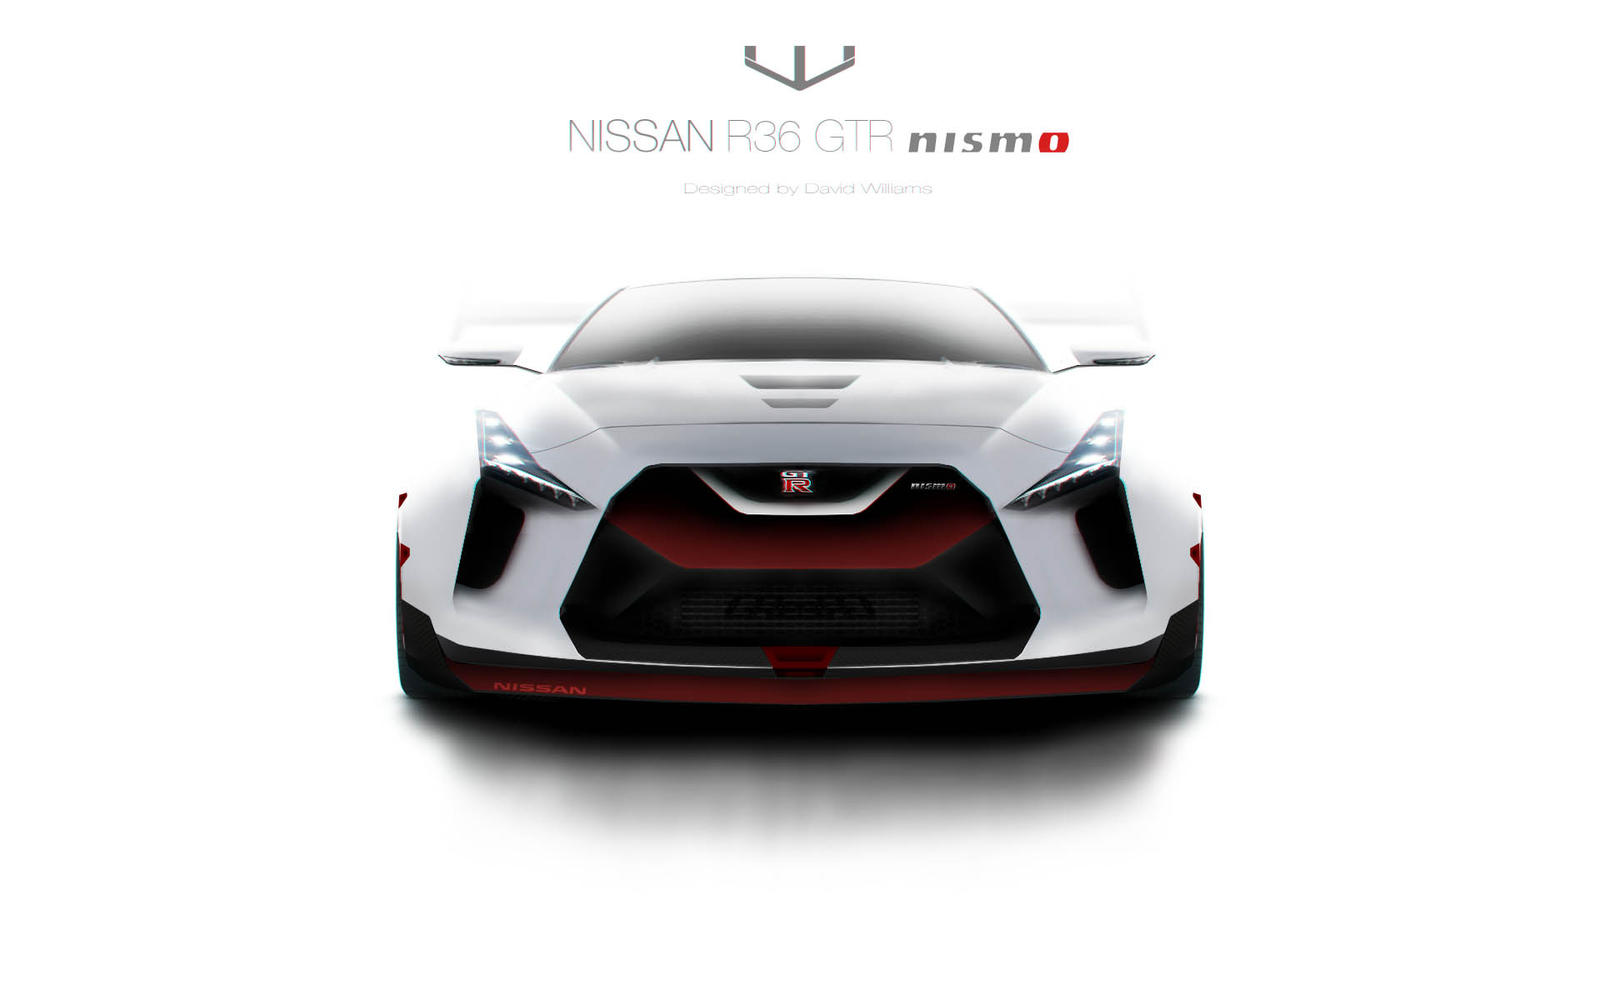 nissan r36 gtr nismo edition by wizzoo7 on deviantart. Black Bedroom Furniture Sets. Home Design Ideas